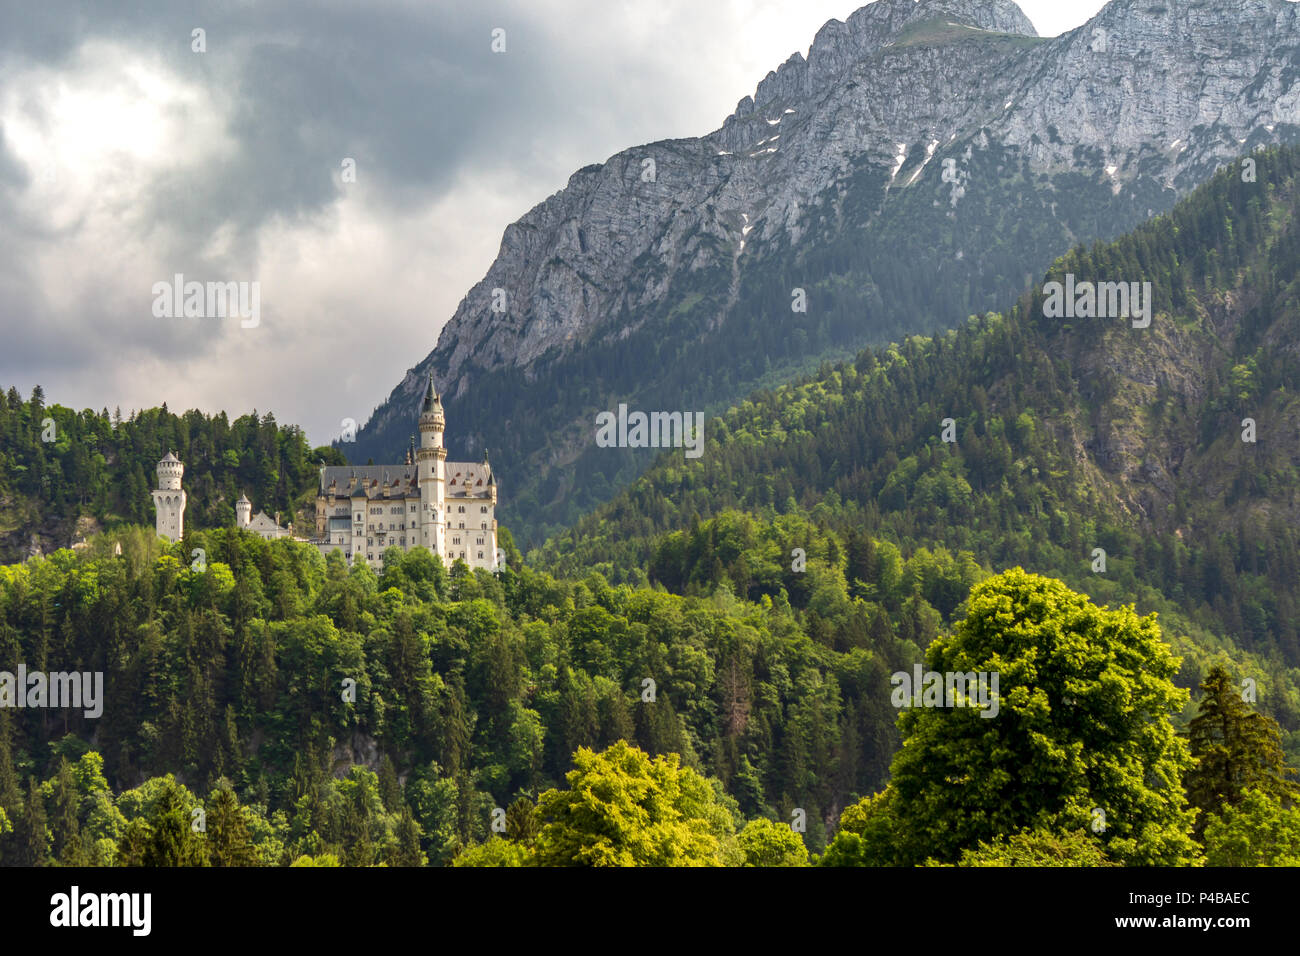 Neuschwanstein Castle is a 19th-century Romanesque Revival palace on a hill above the village of Hohenschwangau near Füssen in southwest Bavaria. Stock Photo